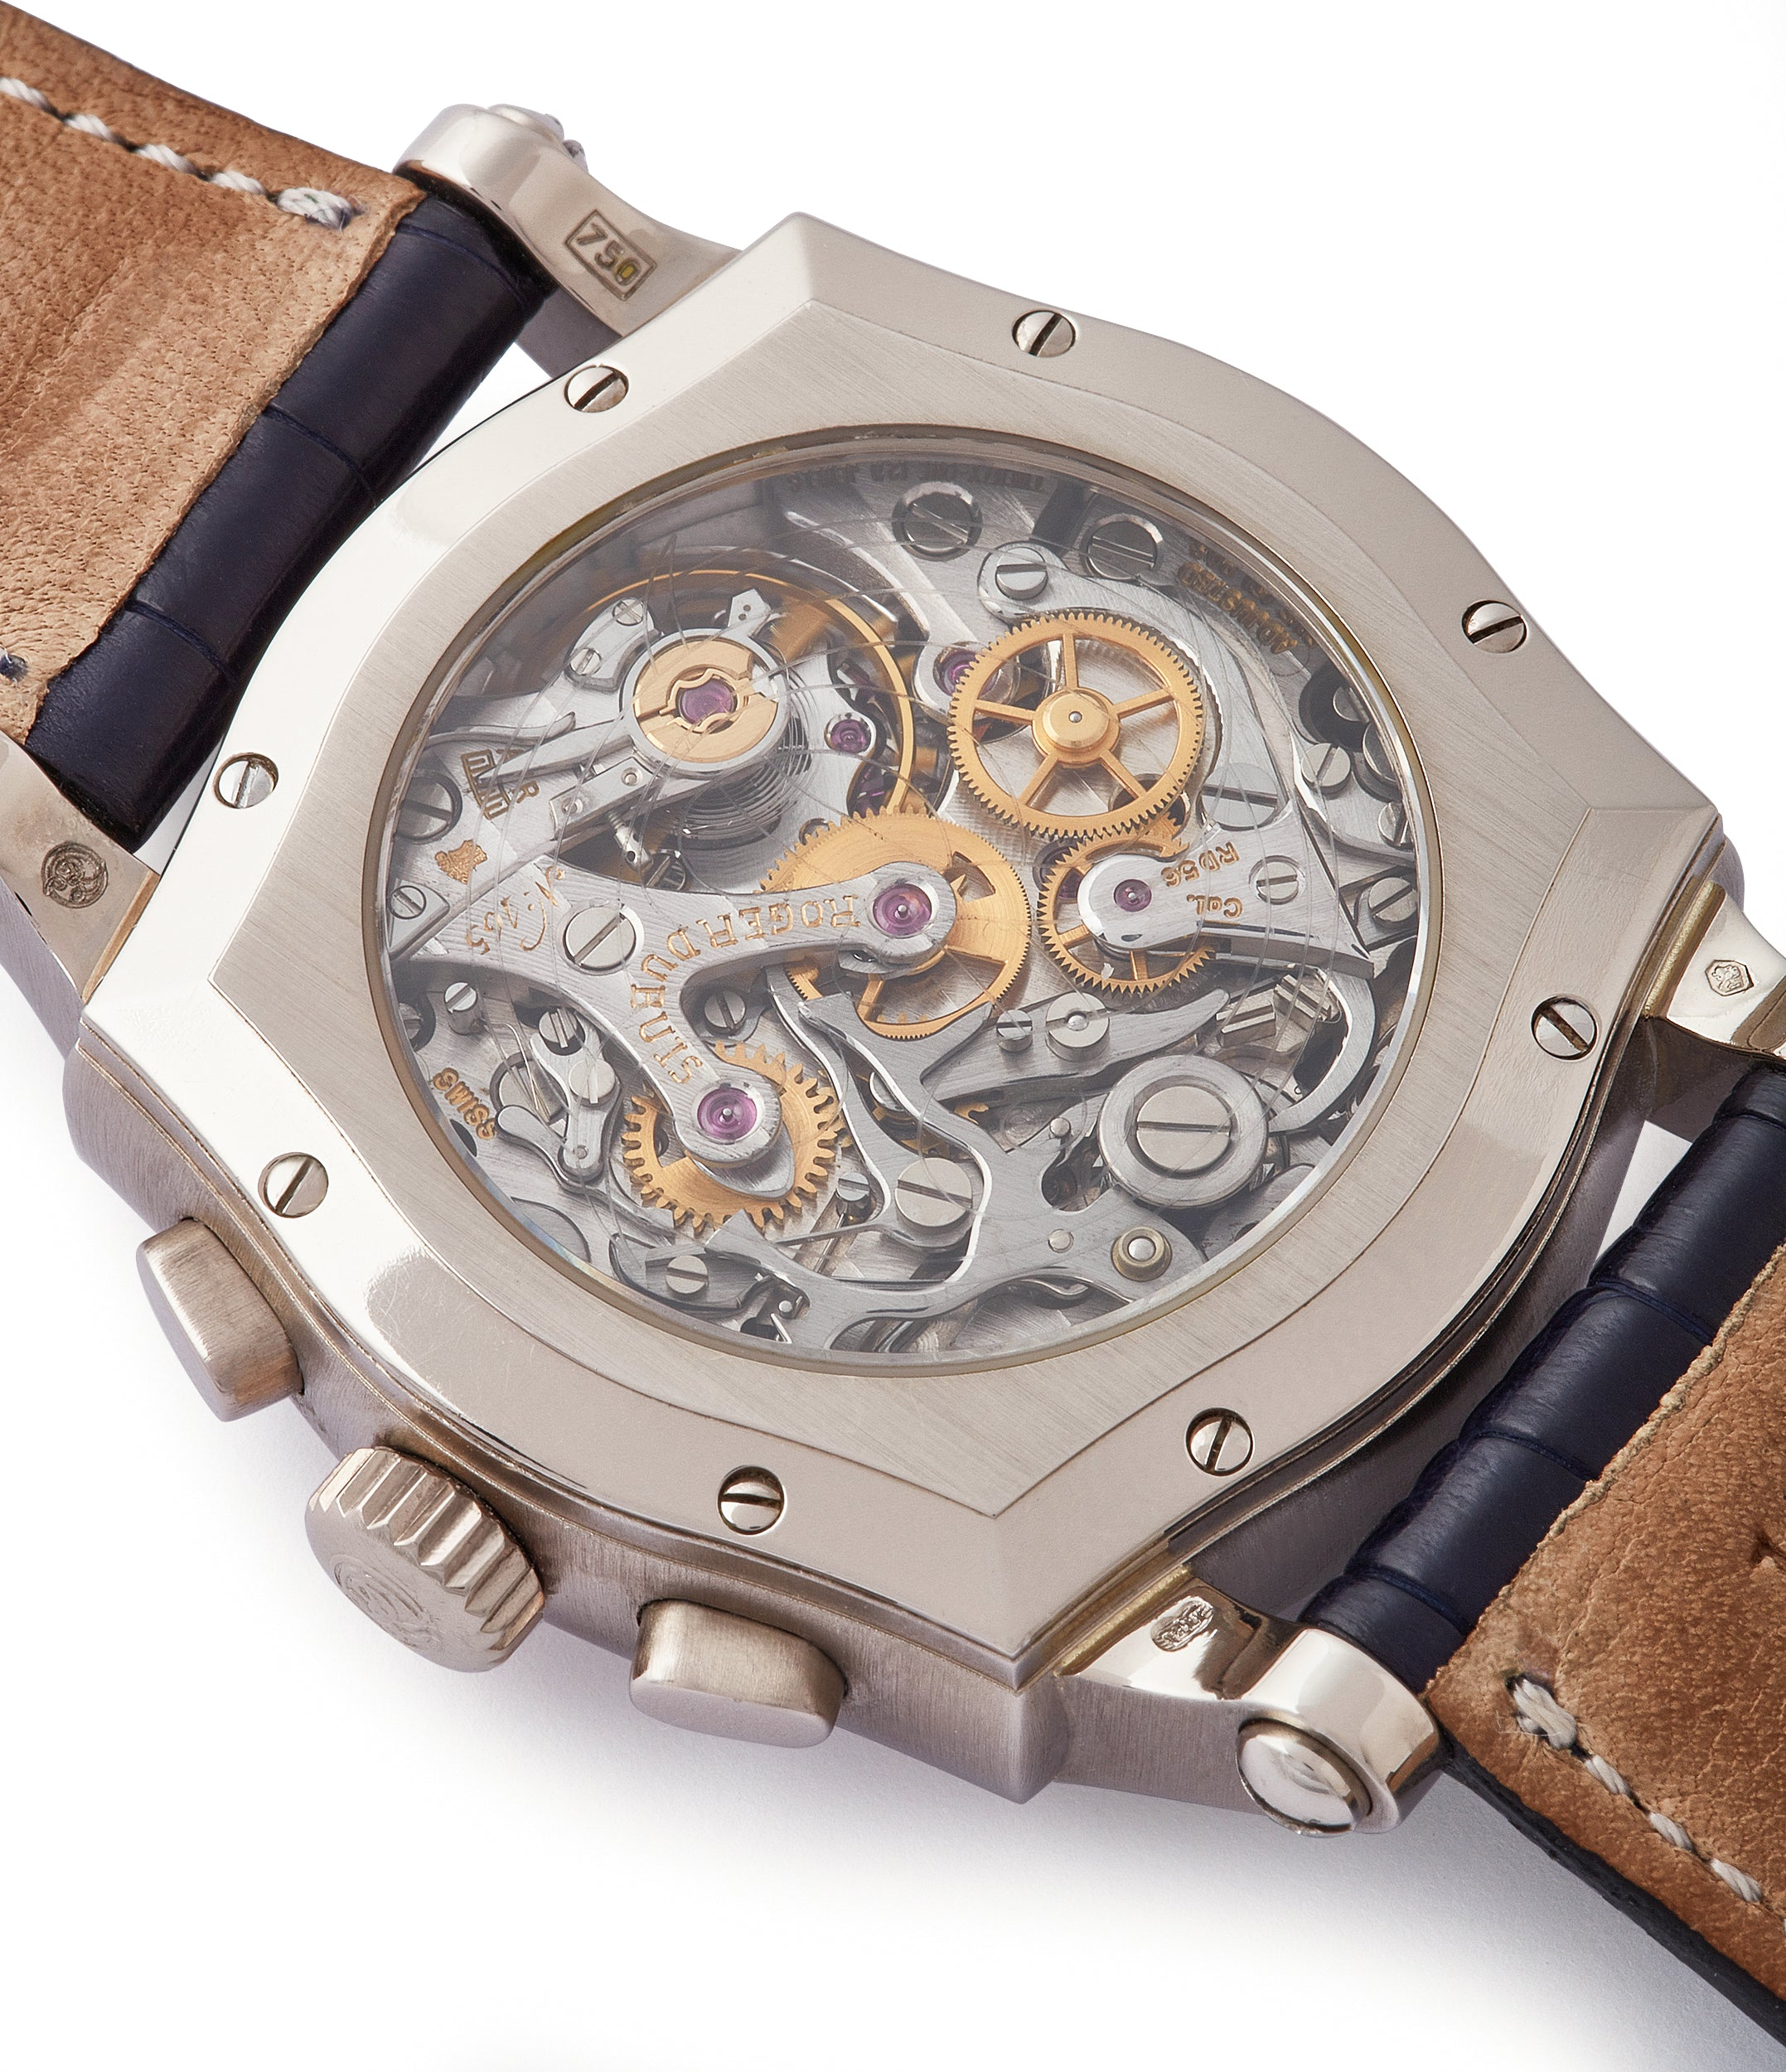 RD 56 Sympathie Chronograph Roger Dubuis S37 Limited Edition white gold dress watch from independent watchmaker for sale online at A Collected Man London UK specialist of rare watches